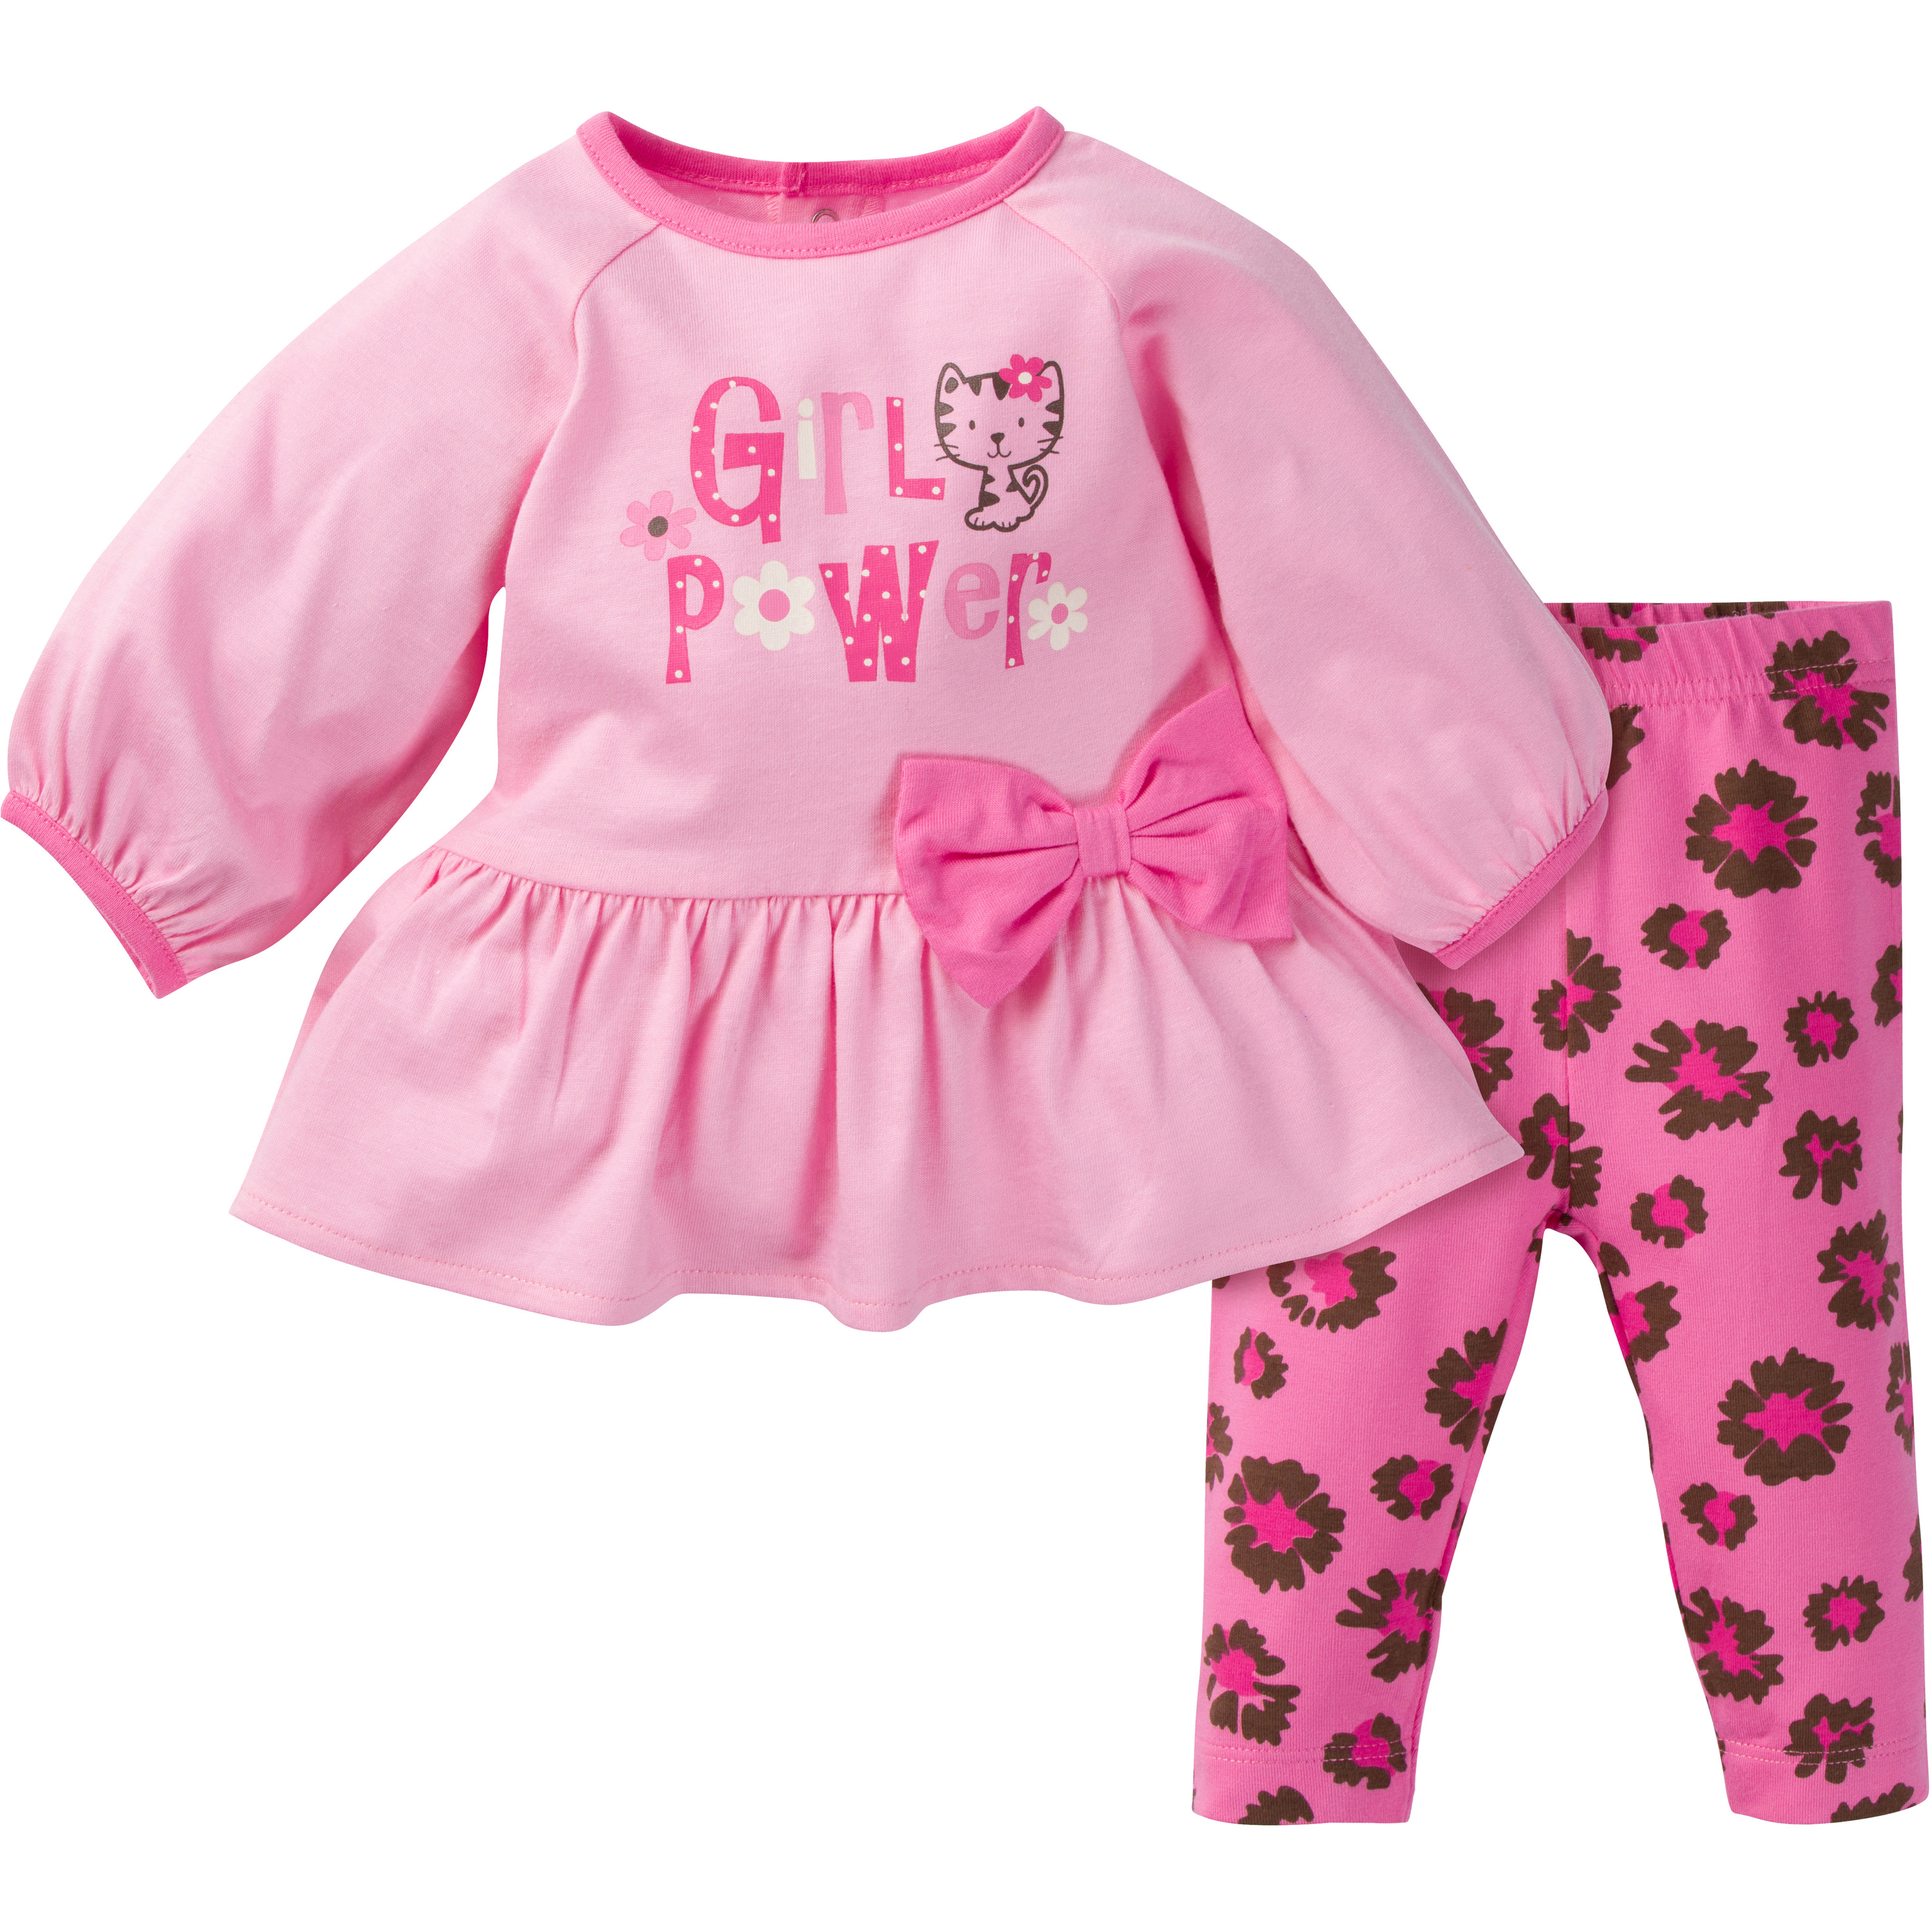 Newborn Baby Girl Tunic & Bow Legging 2pc Outfit Set